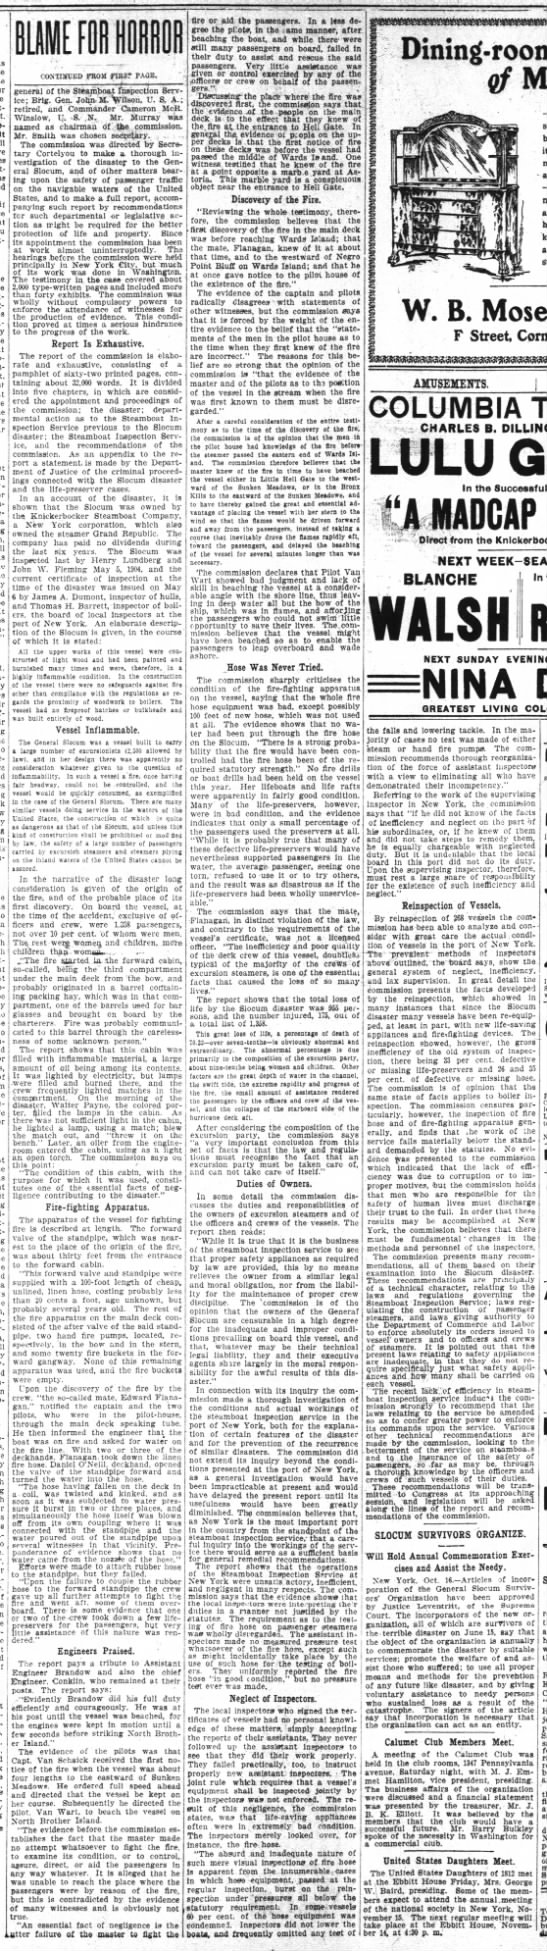 Excerpt from newspaper summary of the government commission report into the General Slocum disaster -